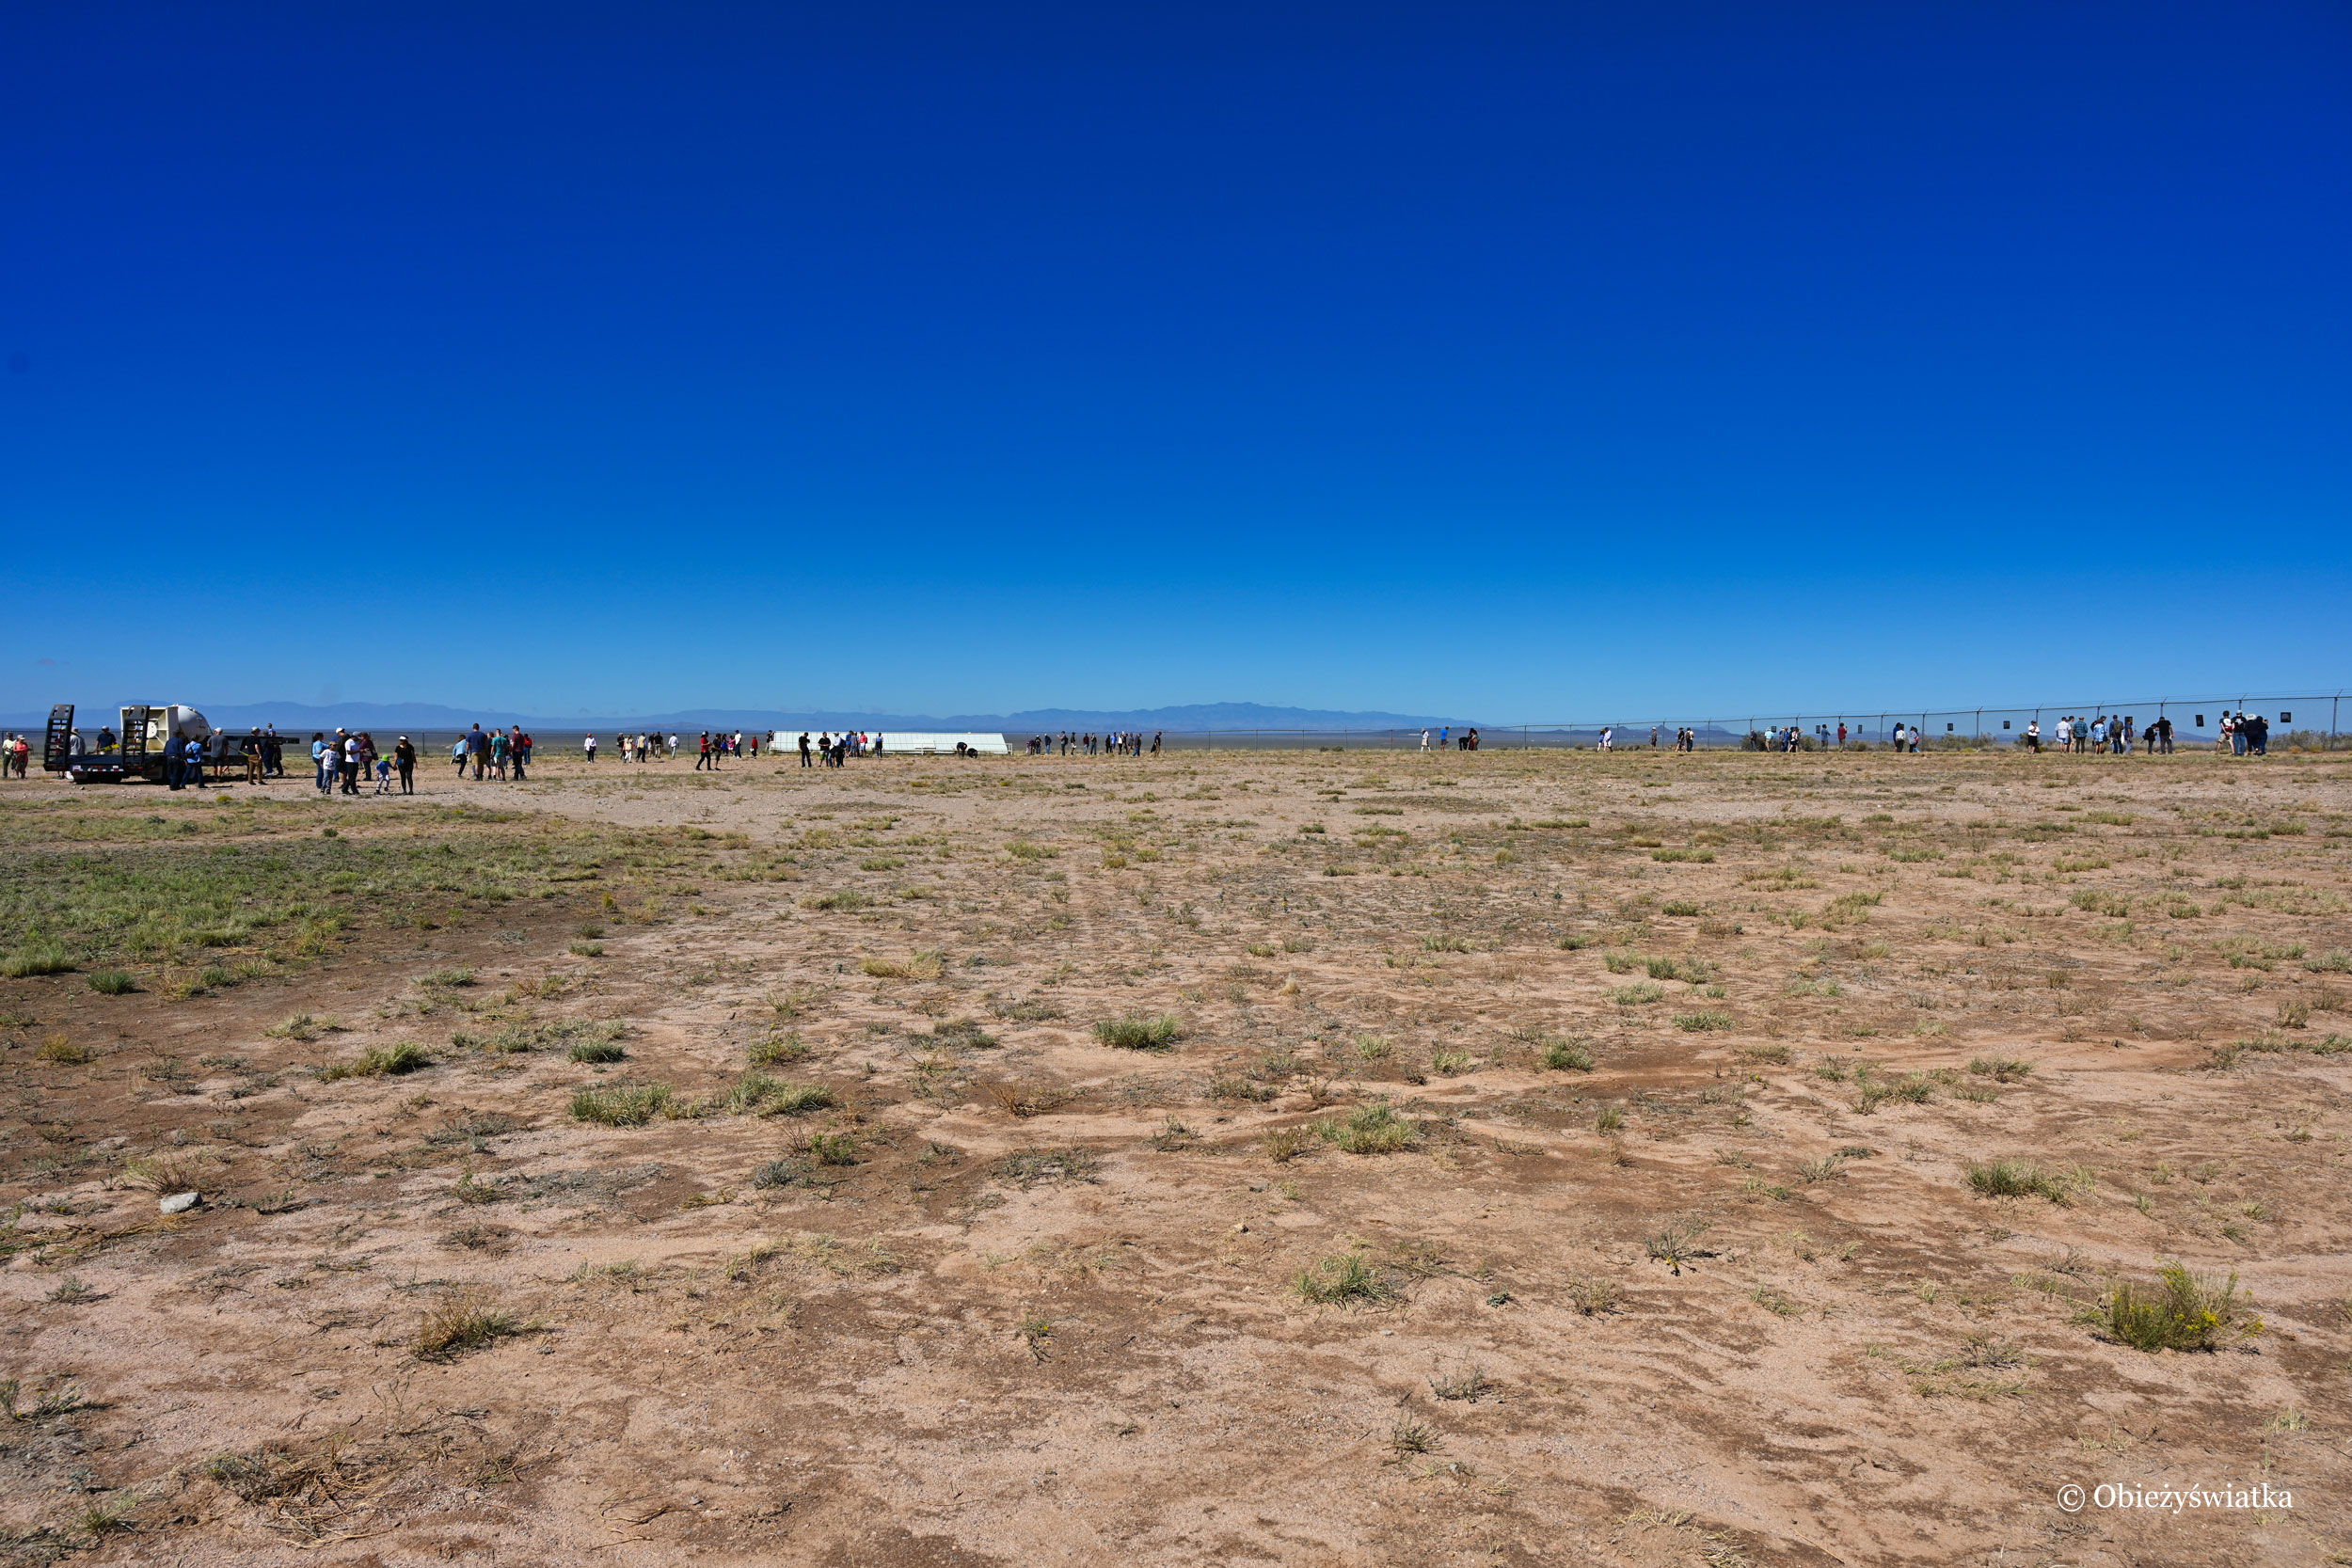 Ground 0, Trinity Test Site, Nowy Meksyk